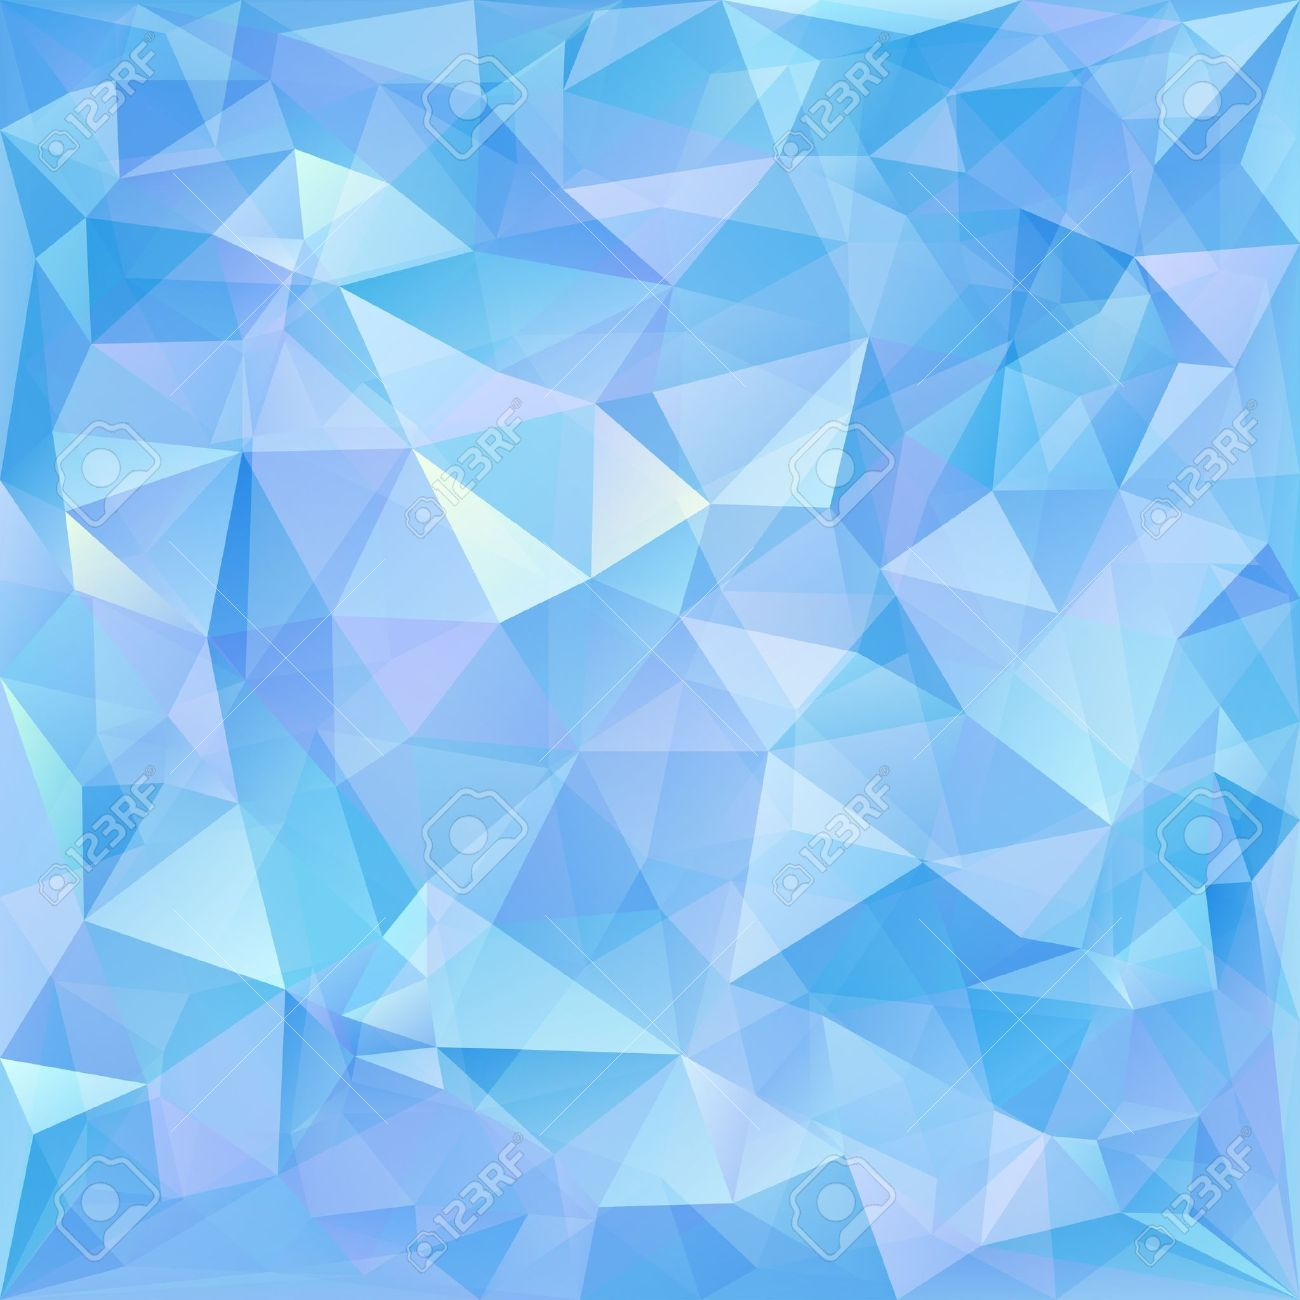 Geometric Pattern Triangles Background Royalty Free Cliparts Vectors And Stock Illustration Image